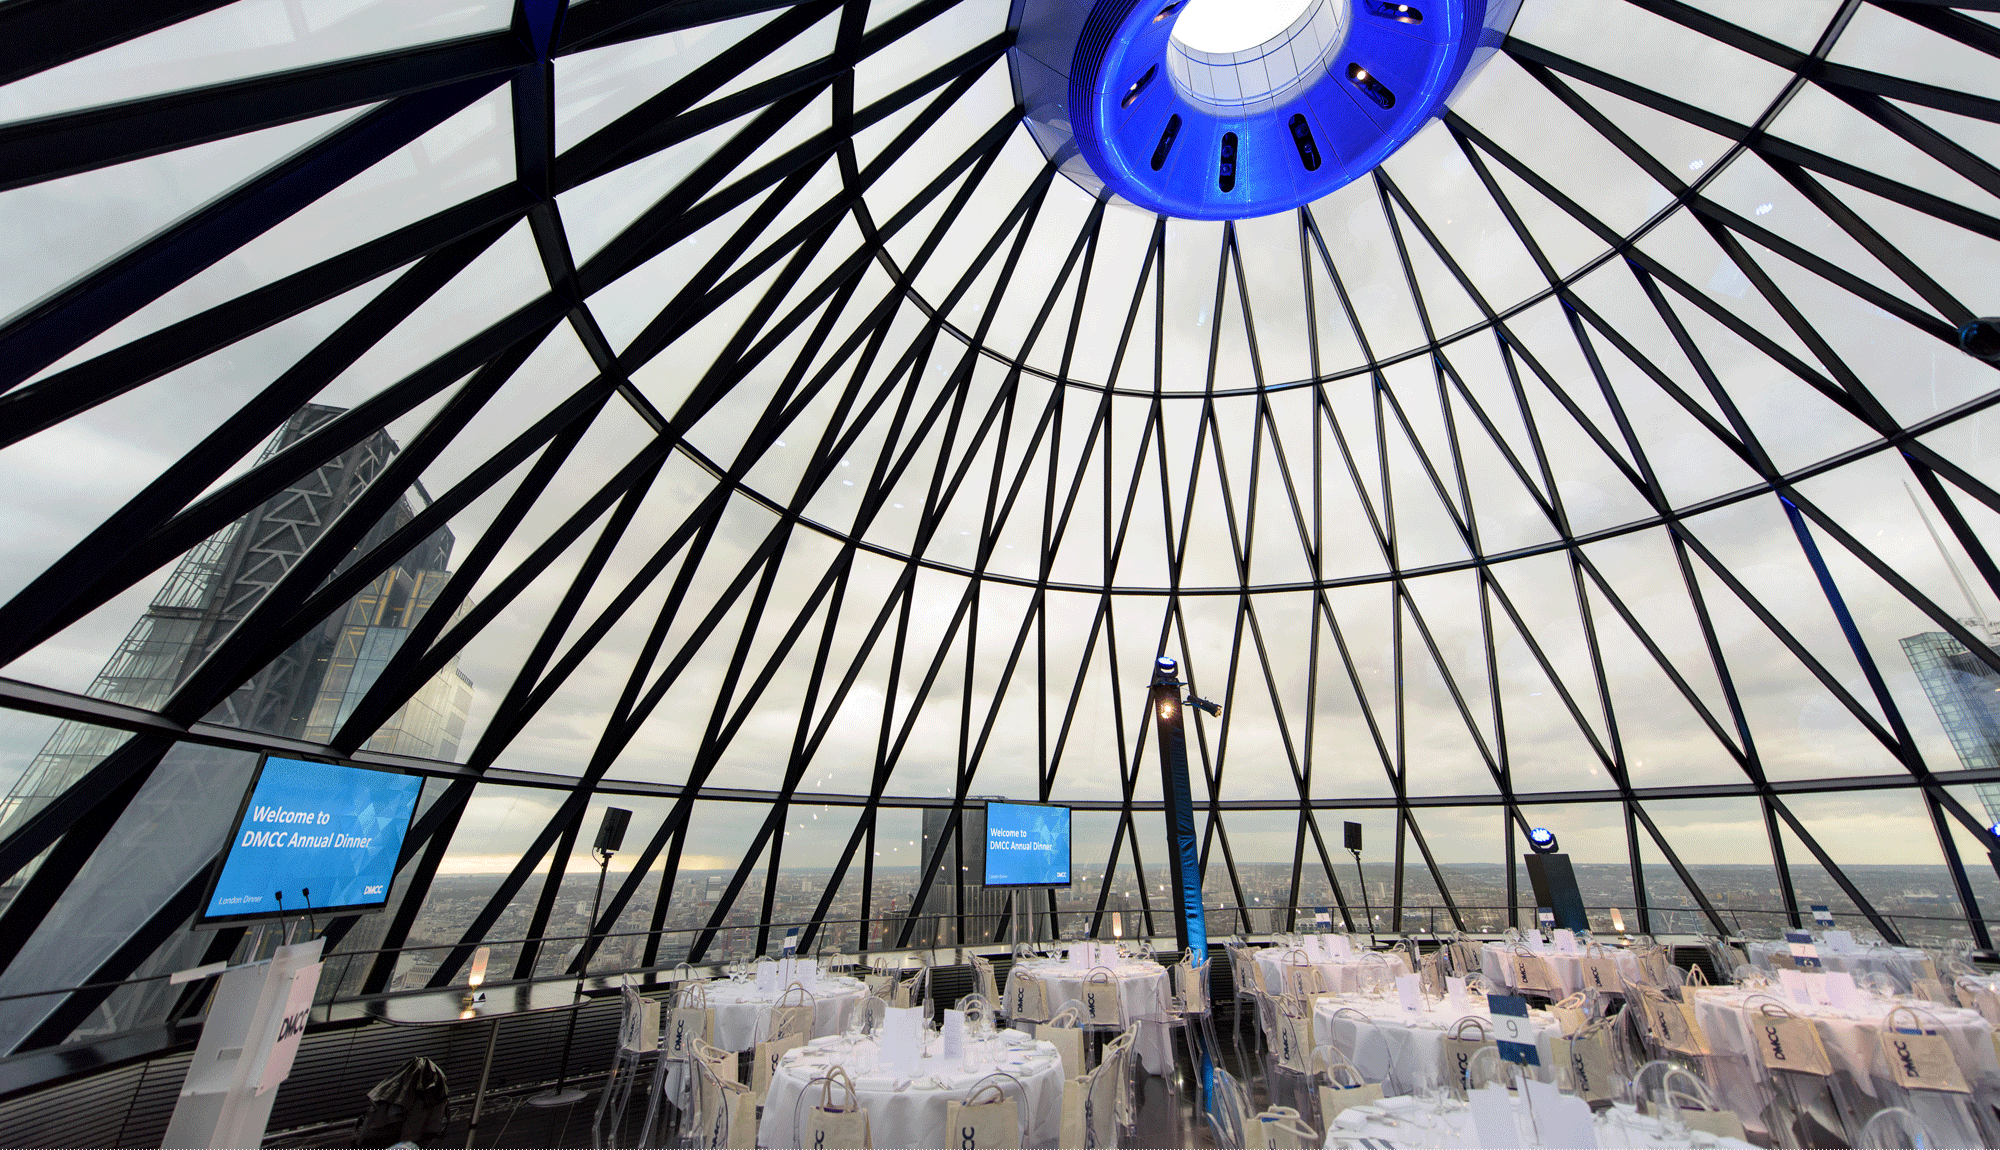 Annual Dinner at the Gherkin